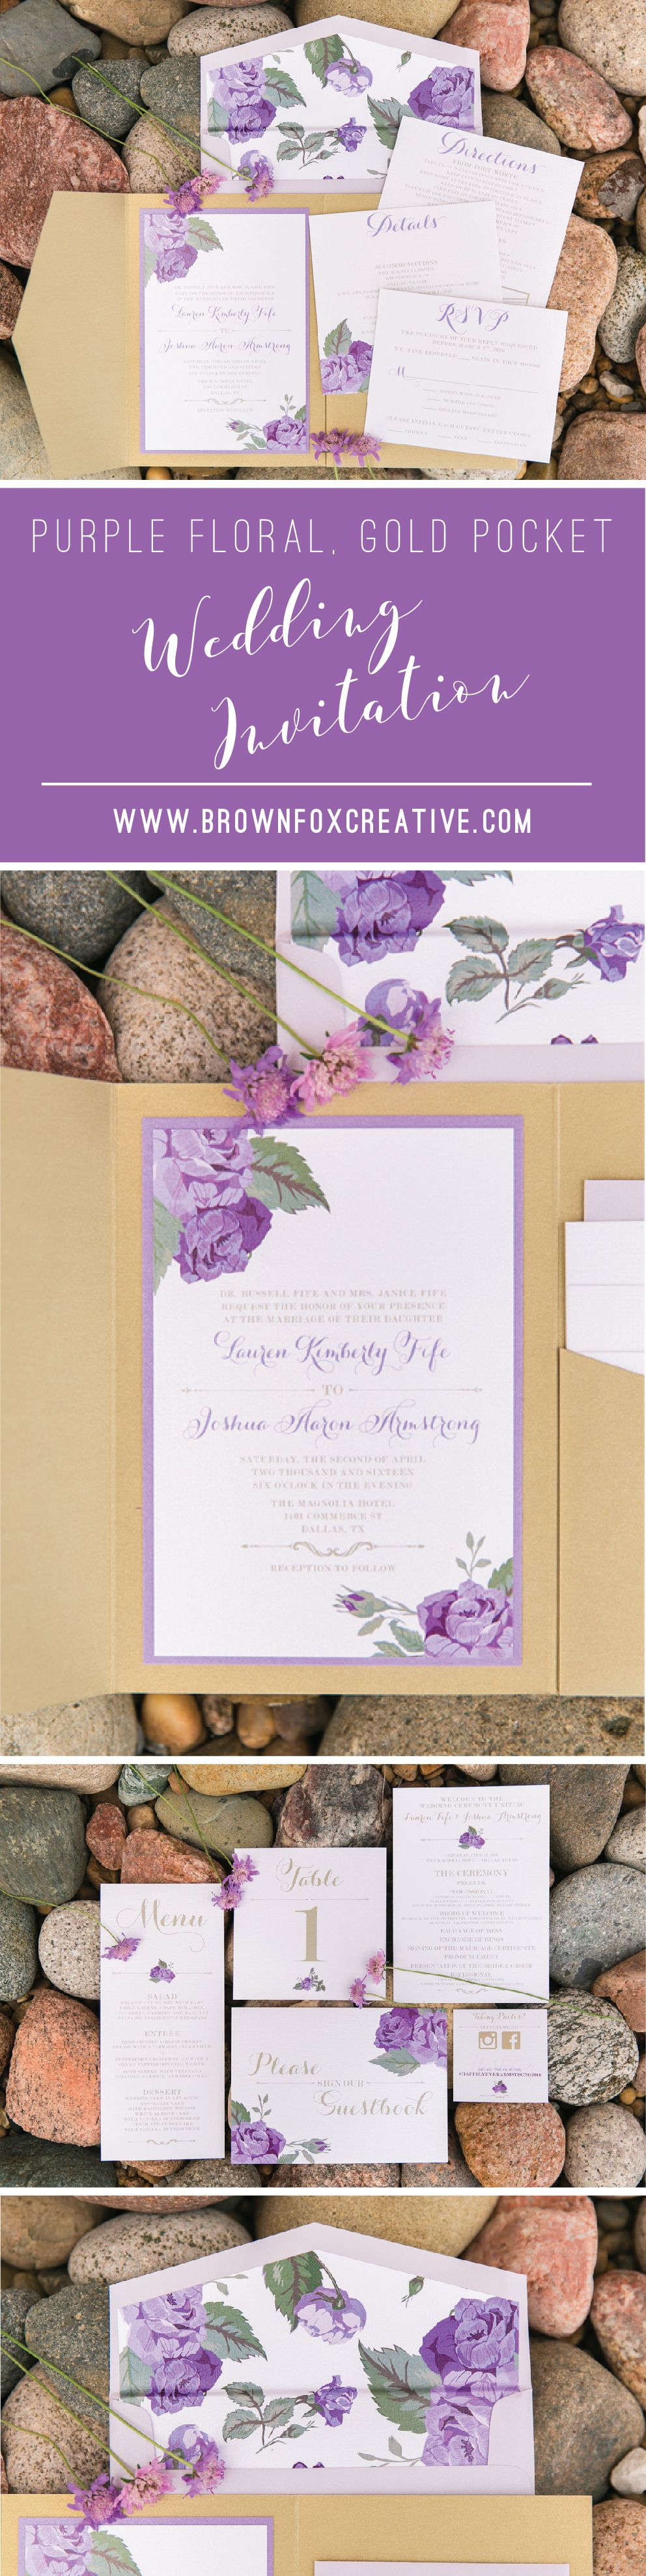 5x7 gold pocket wedding invitation with florals roses in shades of